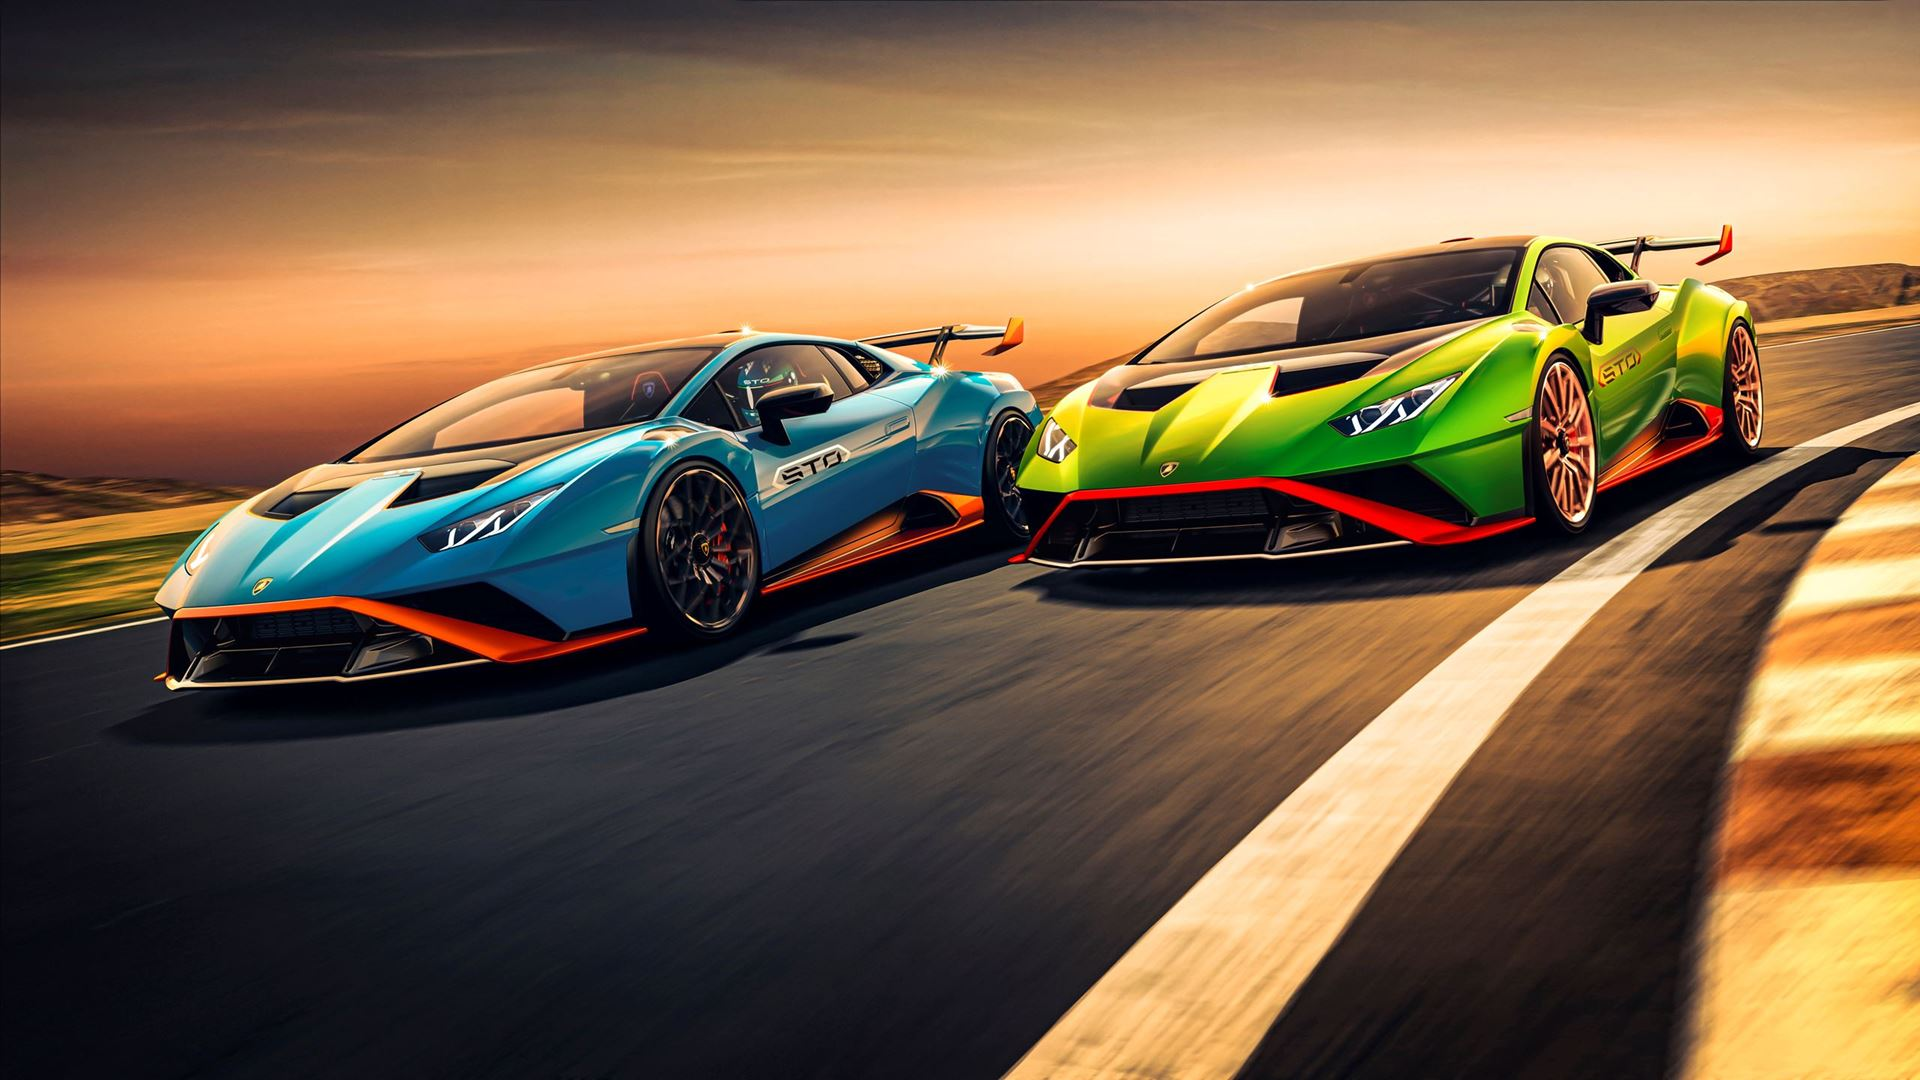 Automobili Lamborghini: Strong profitability and second-best year ever for turnover and sales - Image 5